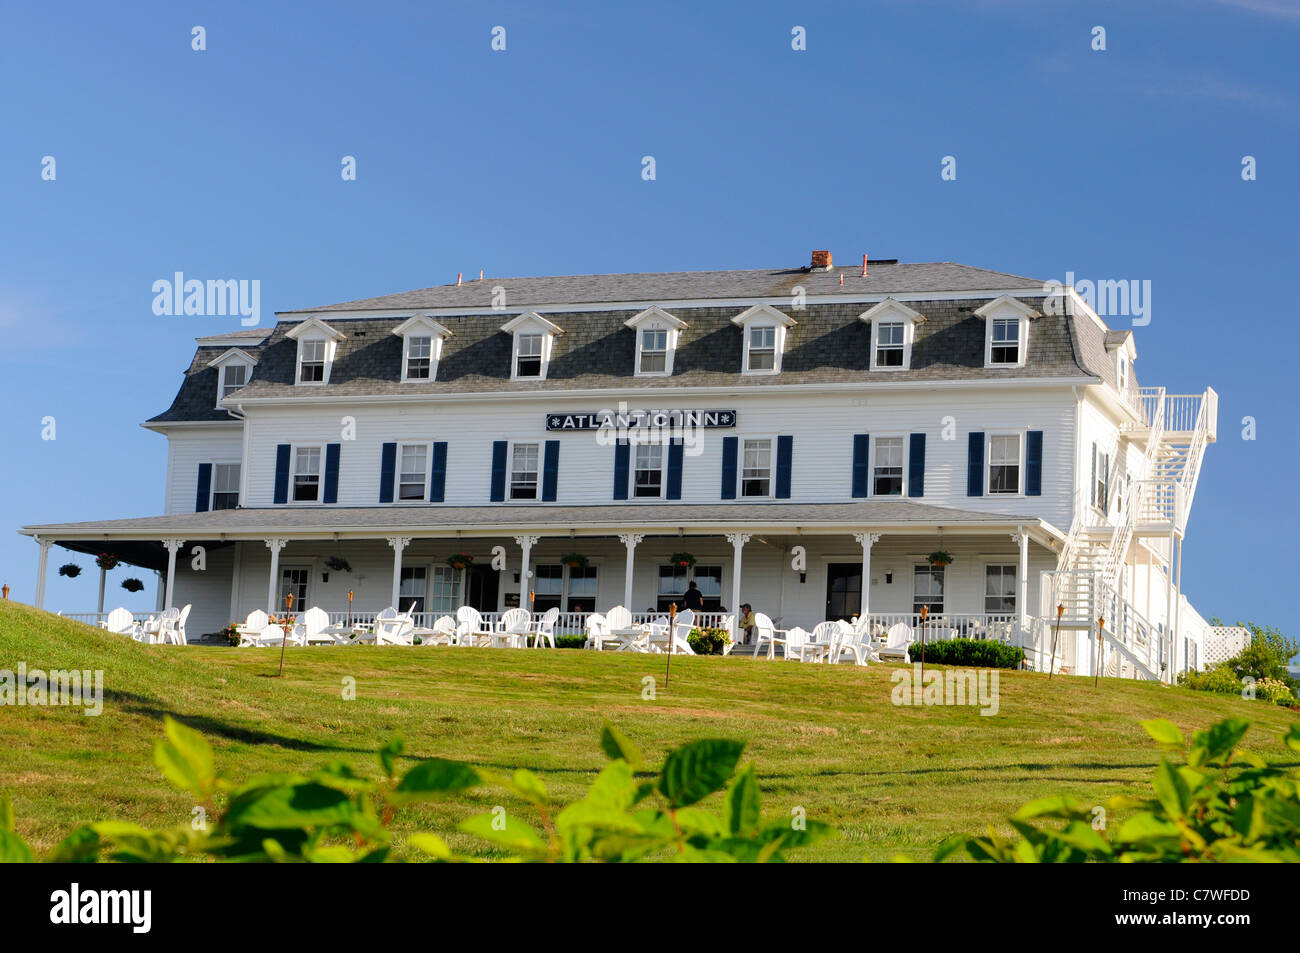 The Atlantic Inn located on Block Island Rhode Island - Stock Image